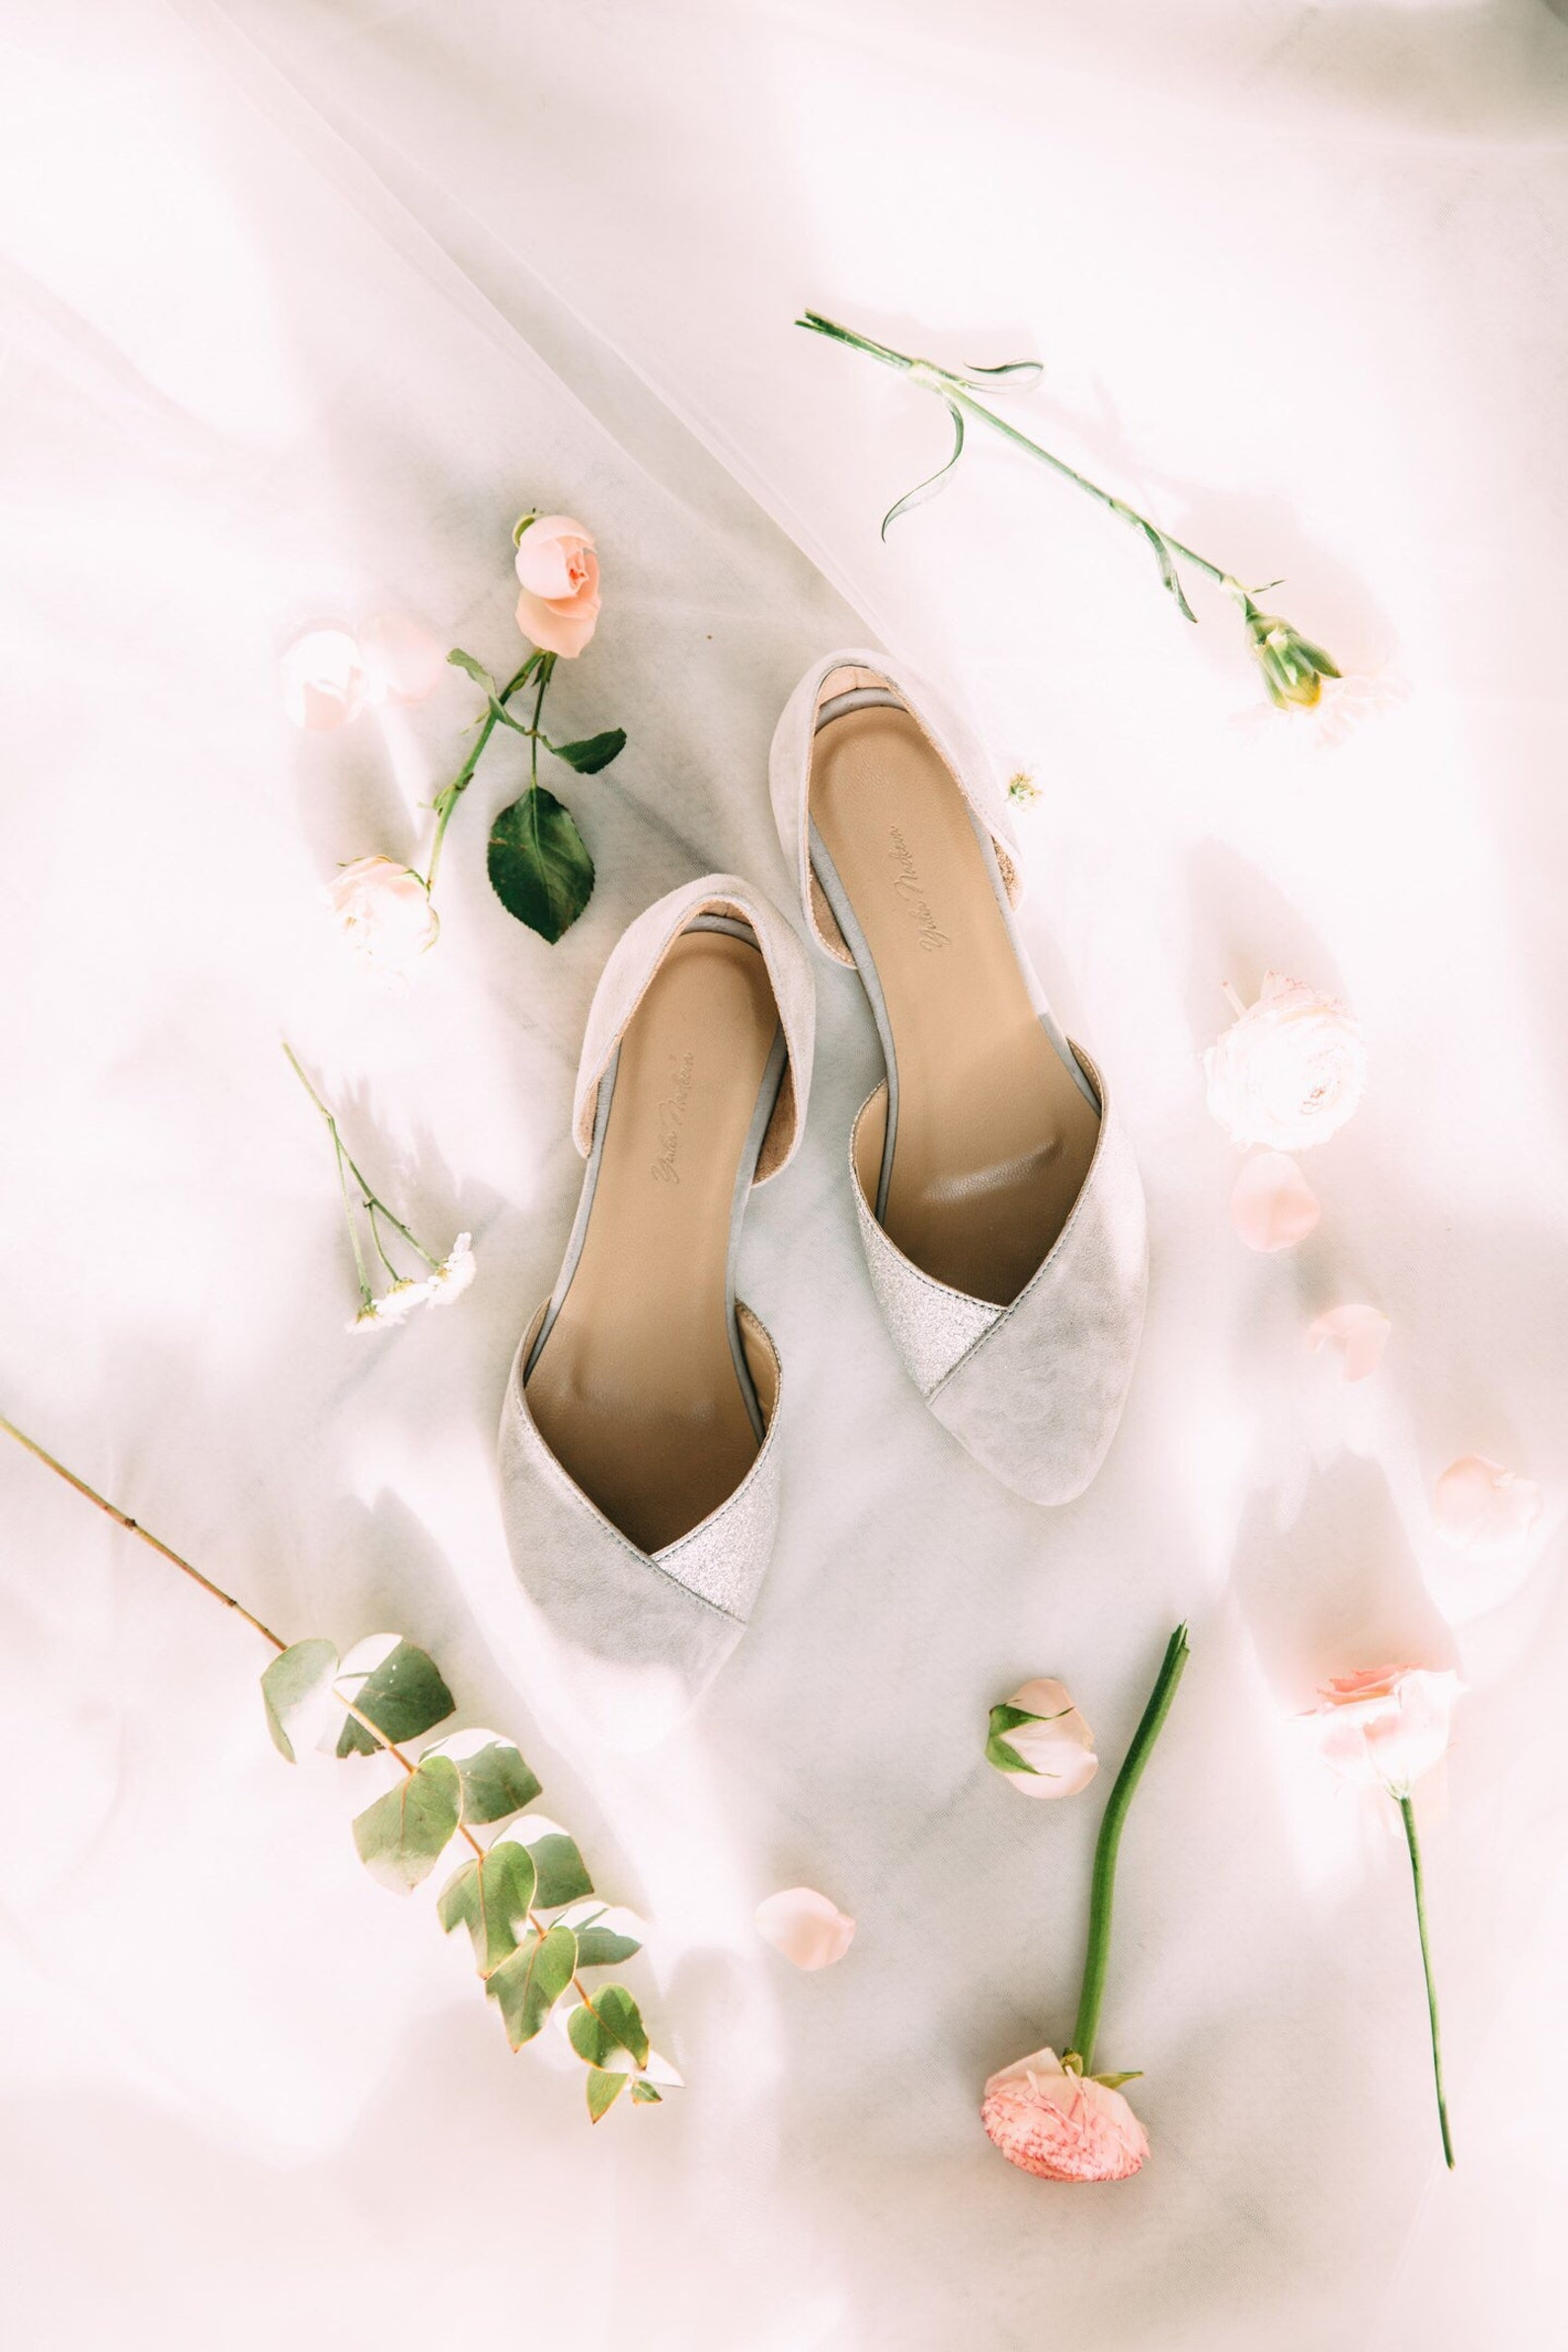 wedding shoes, gray wedding shoes, bridal ballet flats, low wedding shoes, bridal flats, wedding flats, silver flats, ballet fla